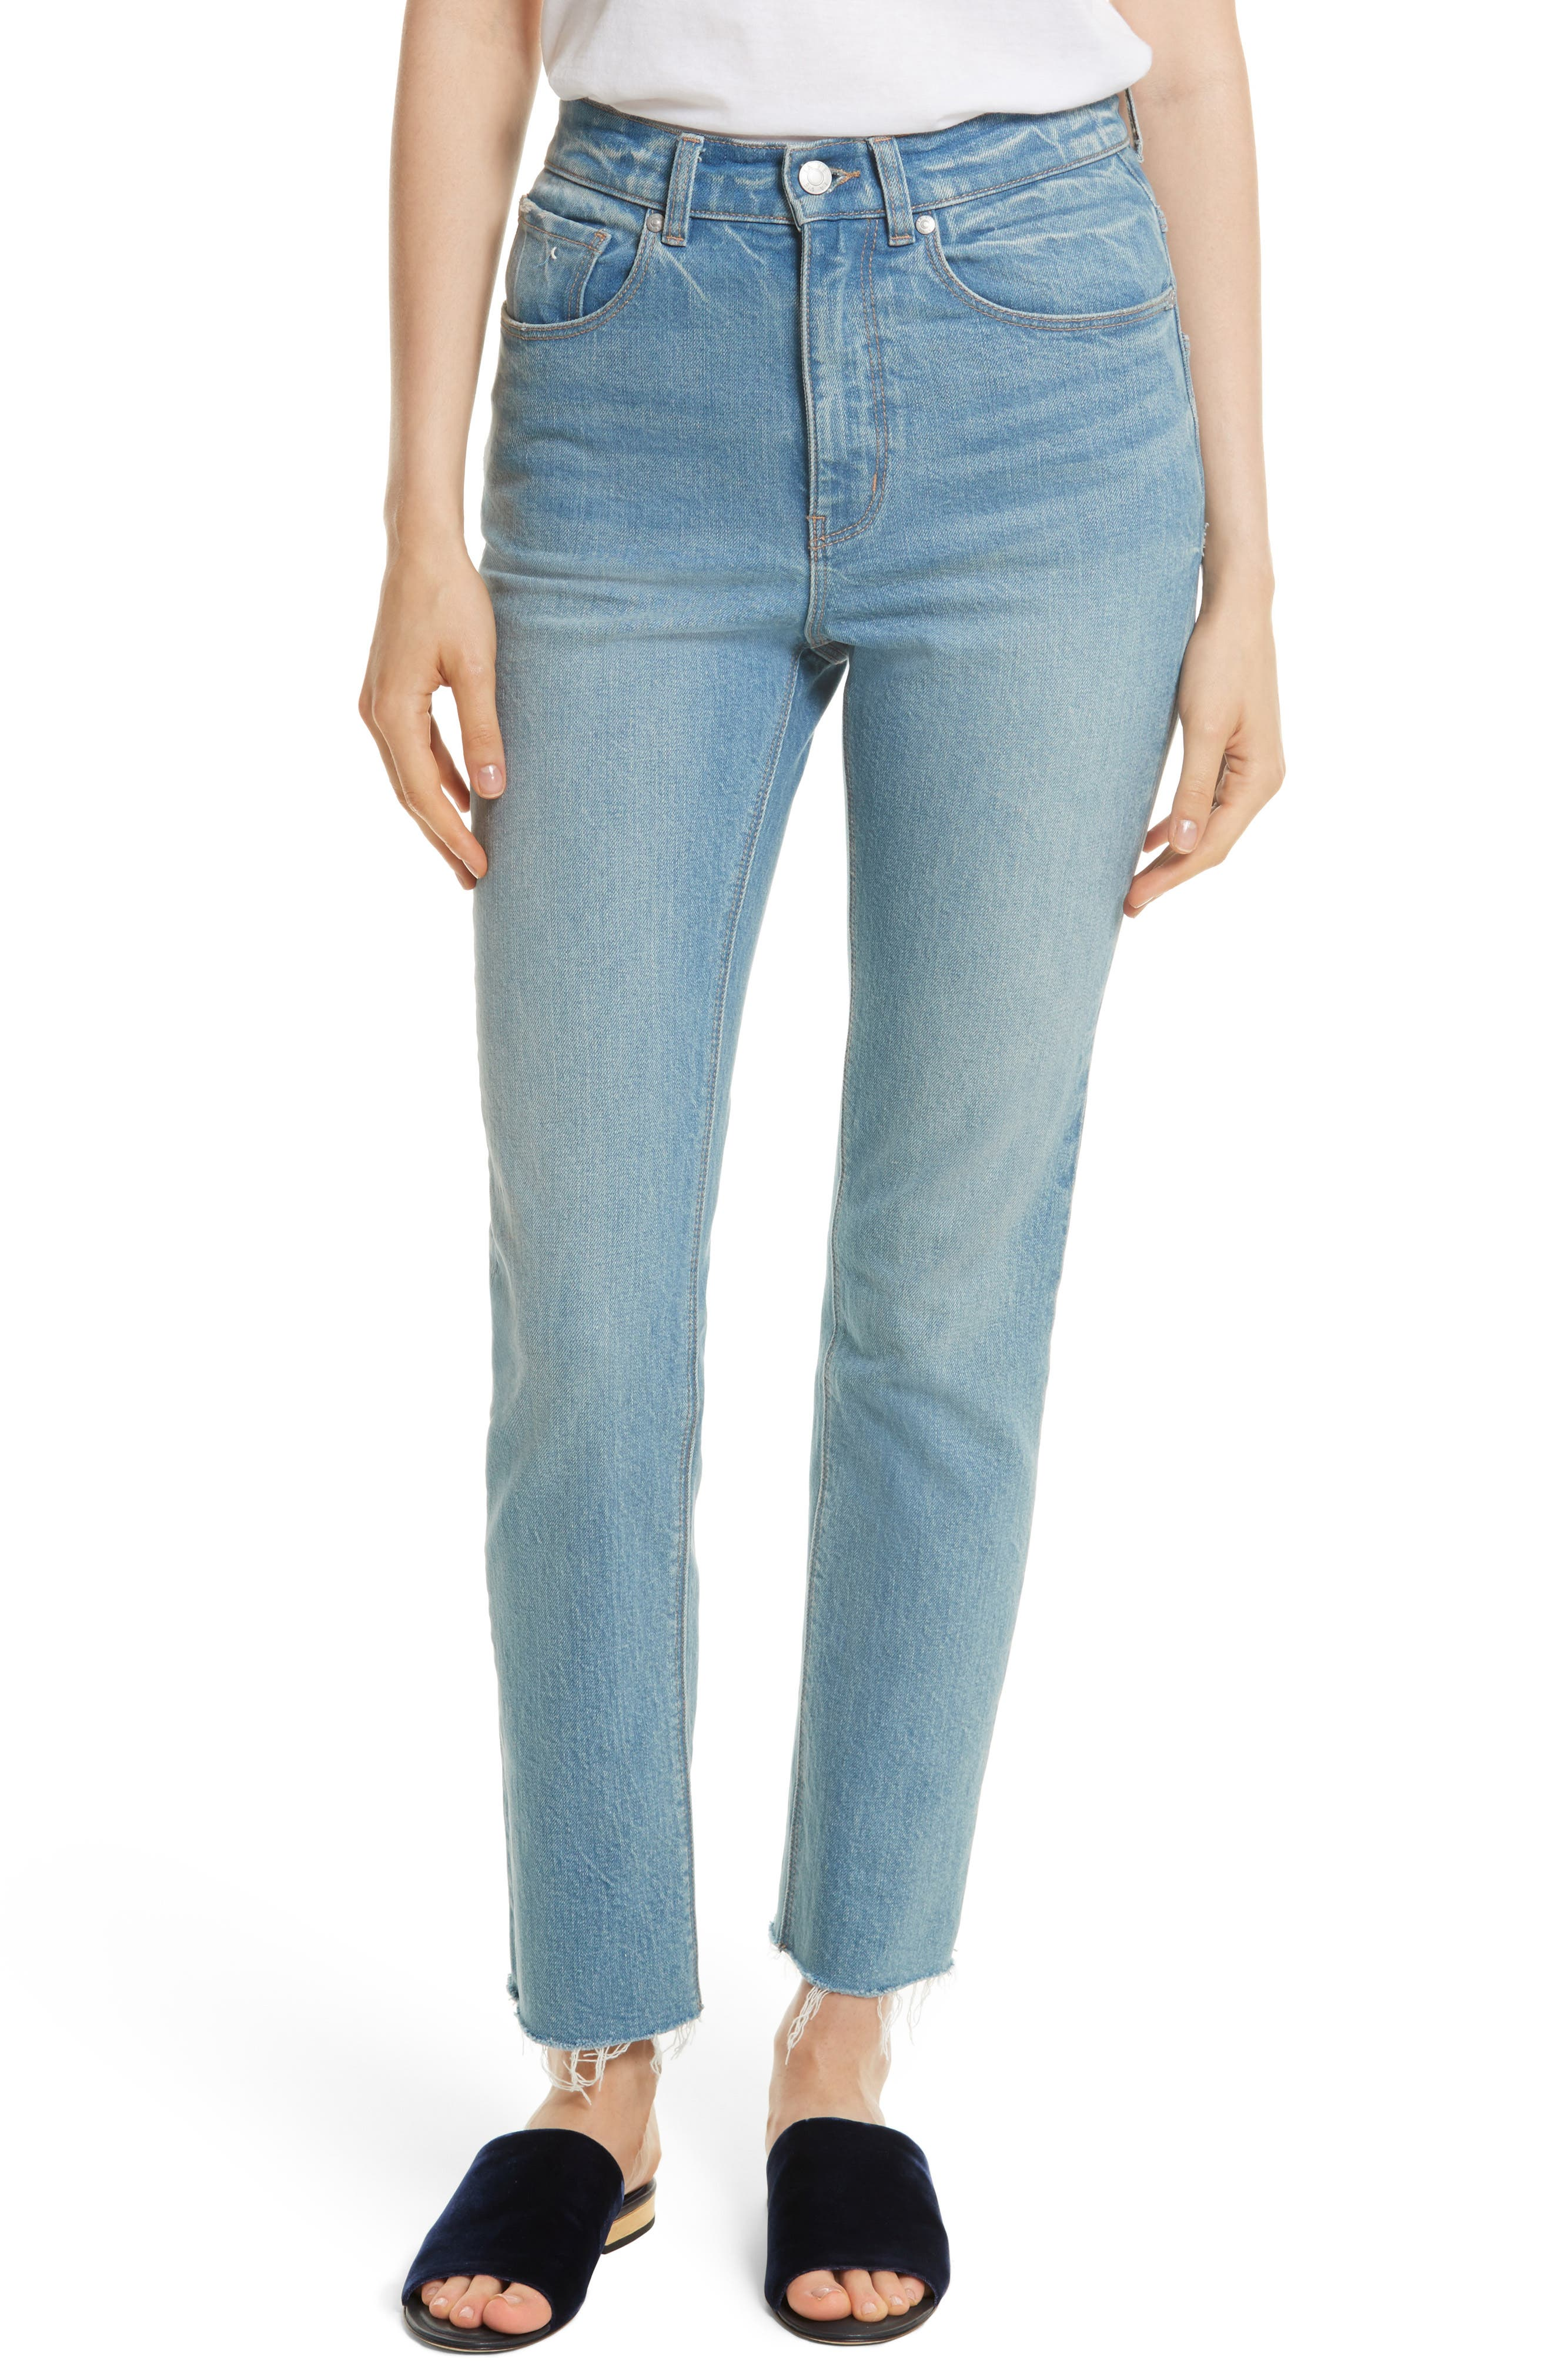 Main Image - La Vie Rebecca Taylor Ines High Waist Ankle Jeans (Bluebell)